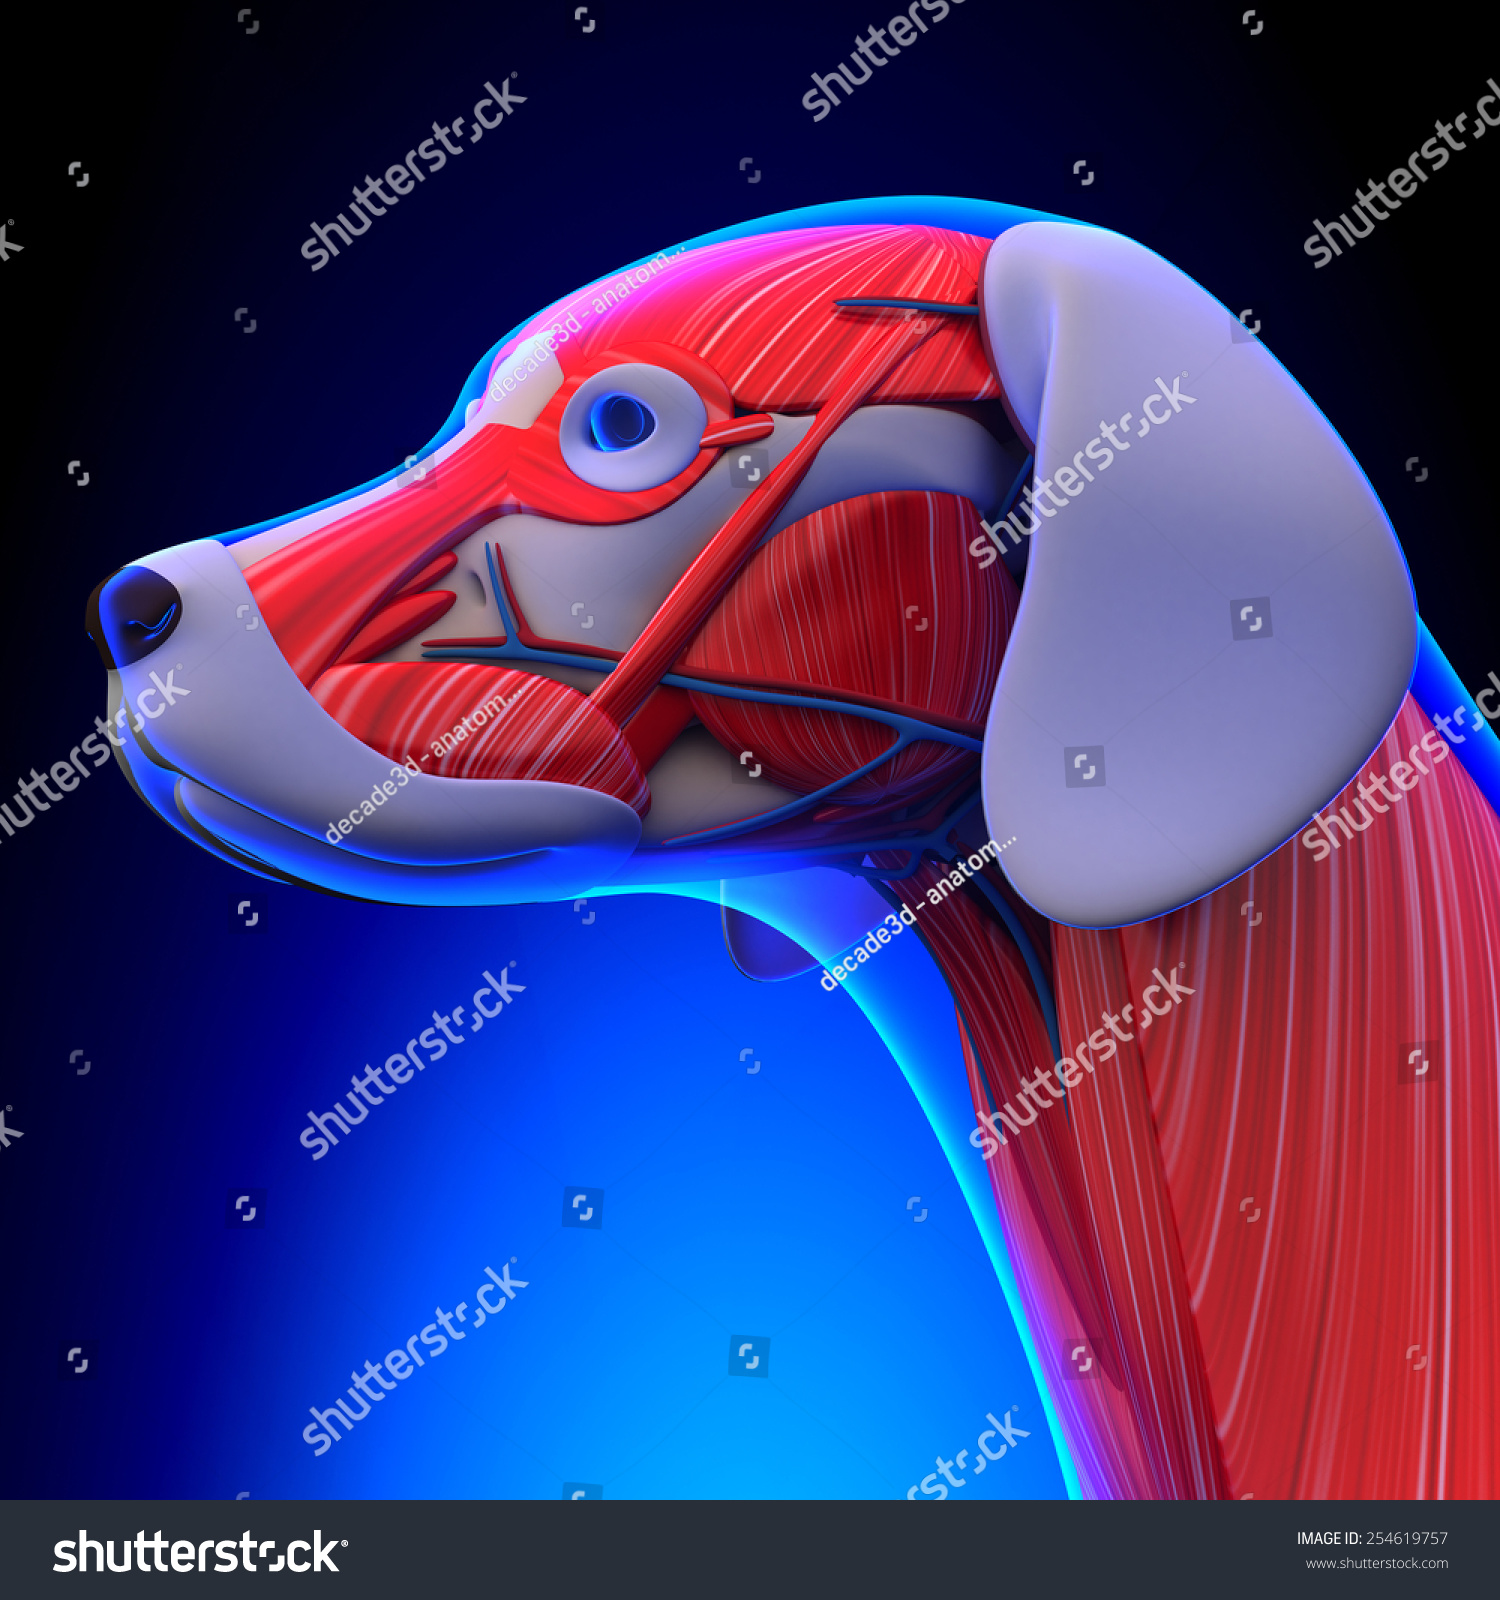 Dog Muscles Anatomy Head Stock Illustration 254619757 - Shutterstock